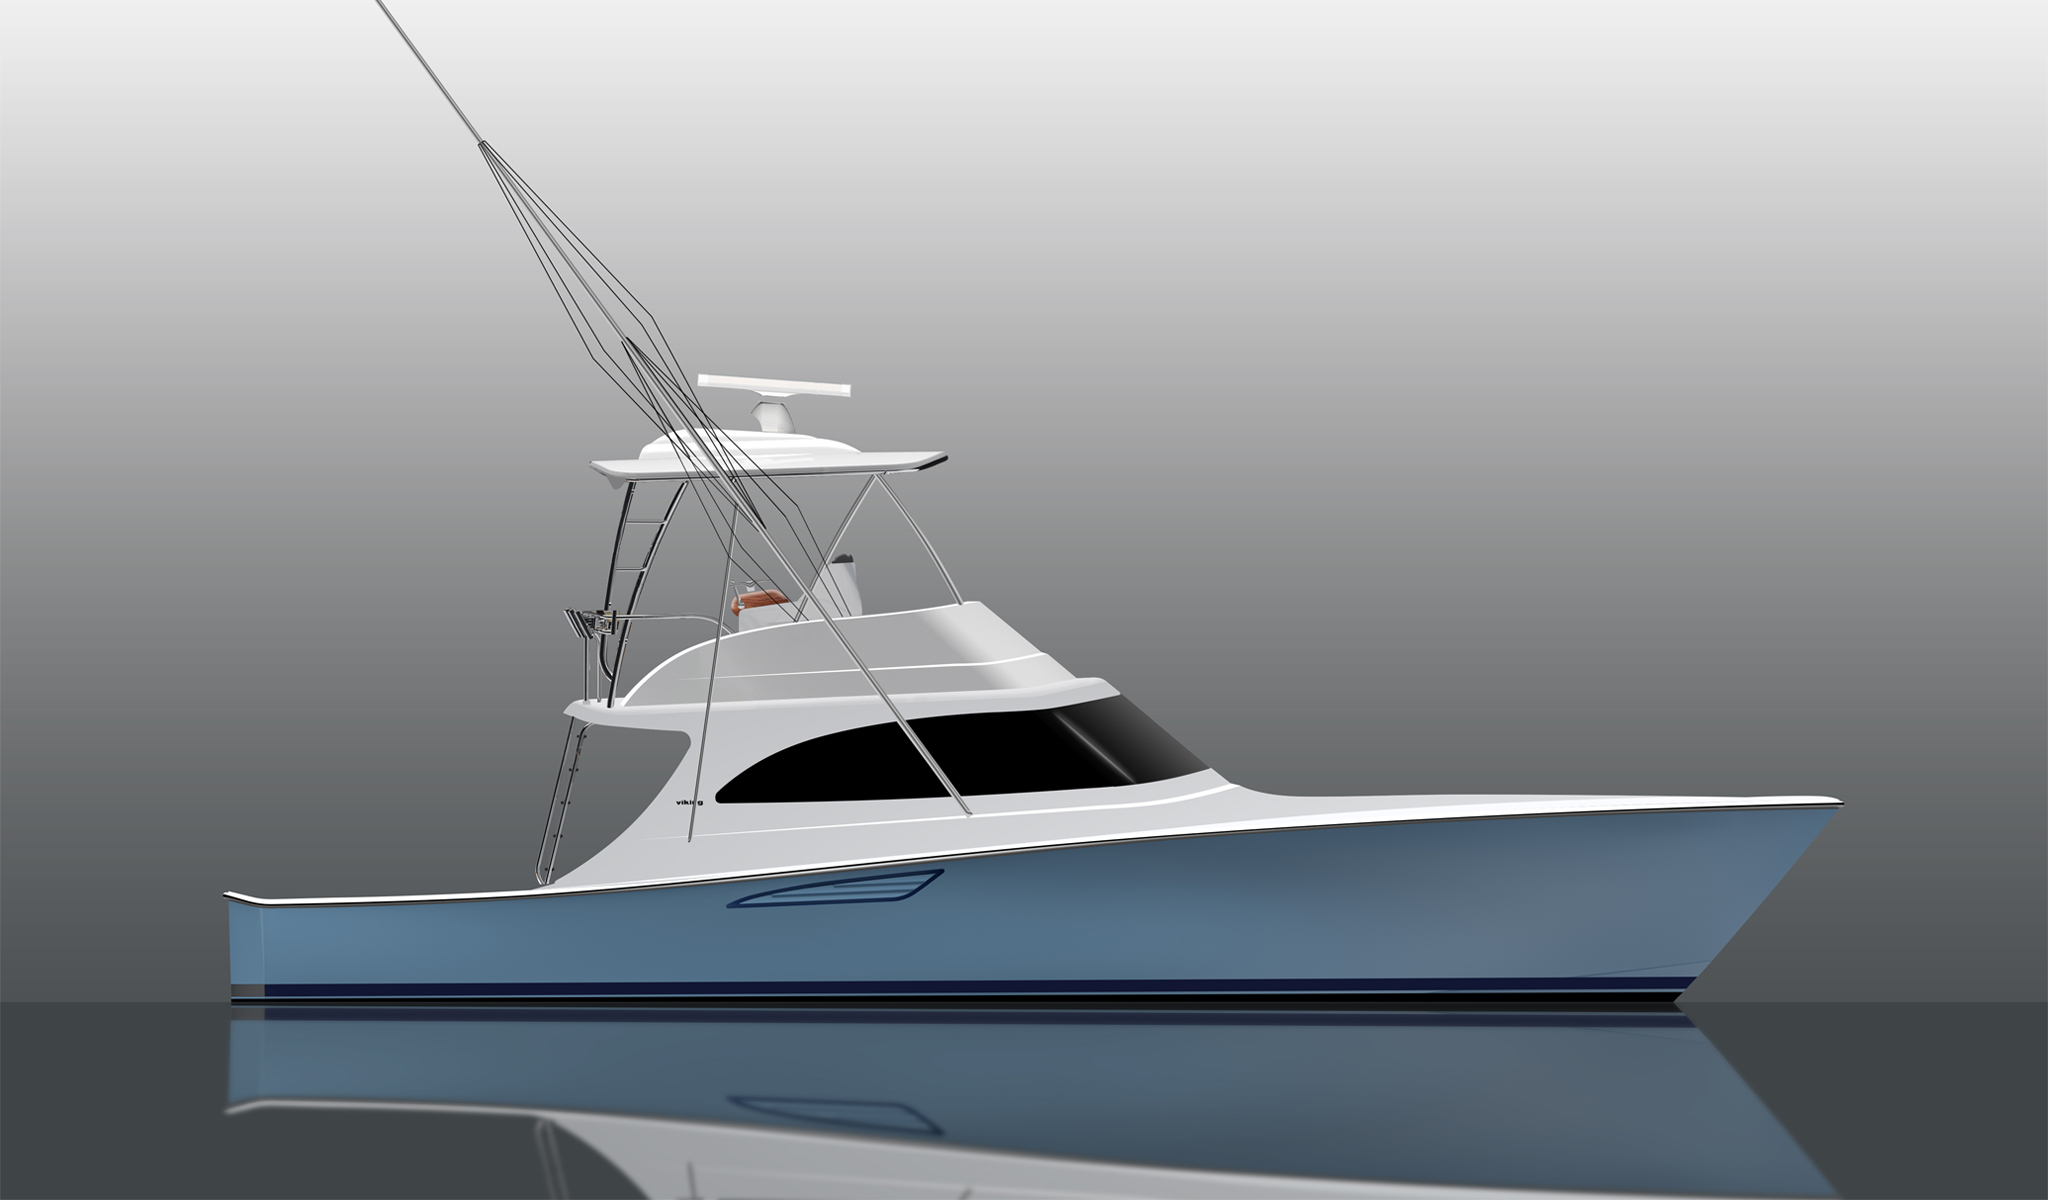 Viking Yachts 46 Billfish - 46BF